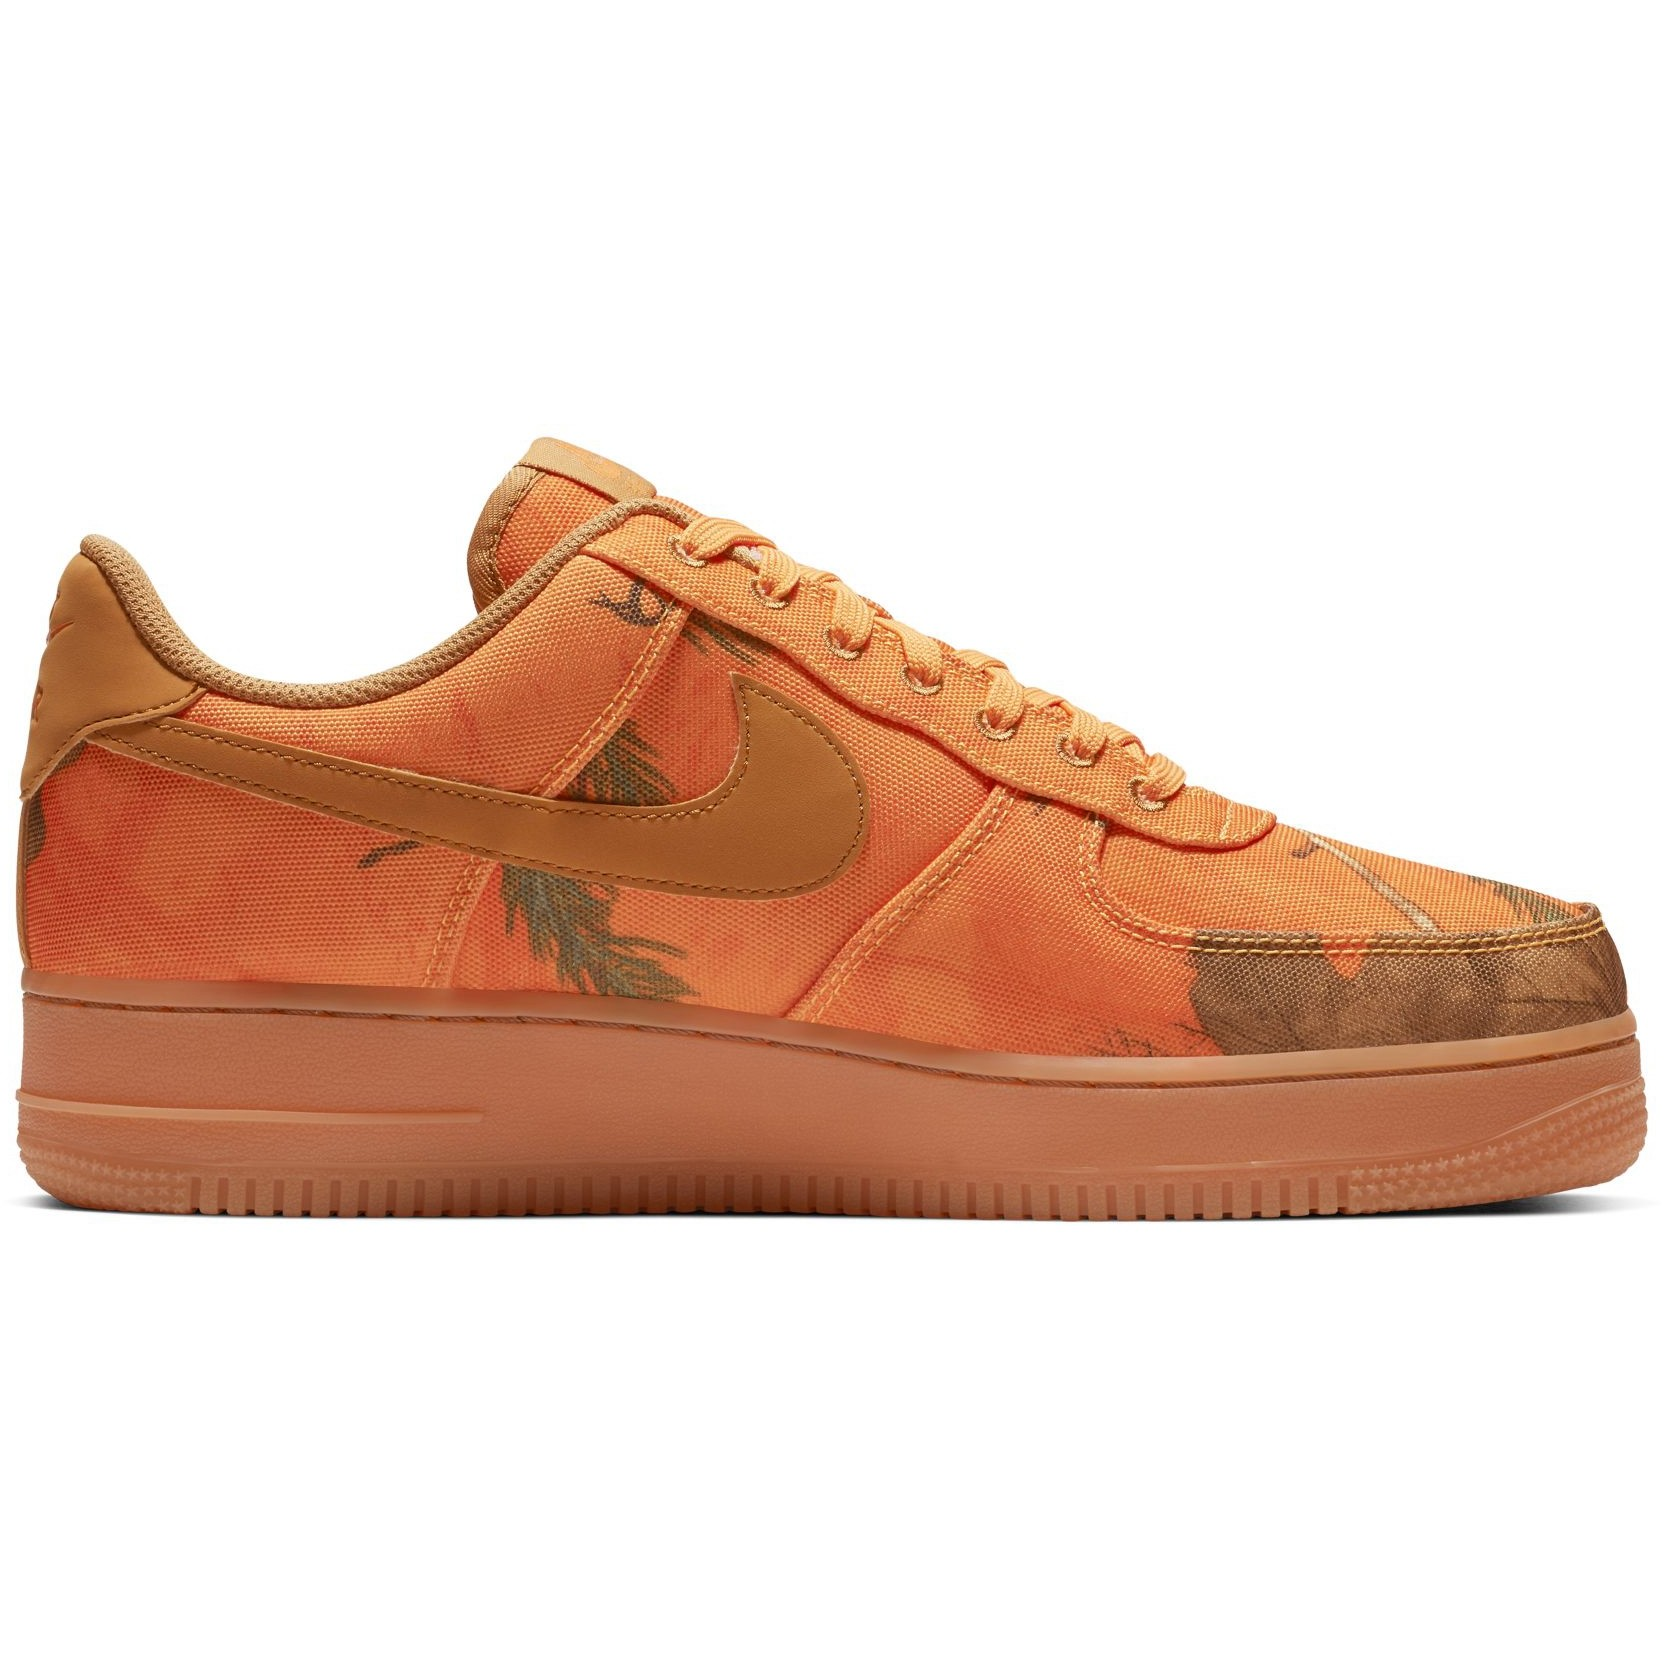 Nike Air Force 1 07 Lv8 Realtree Camp Orange Camo - Laisvalaikio batai